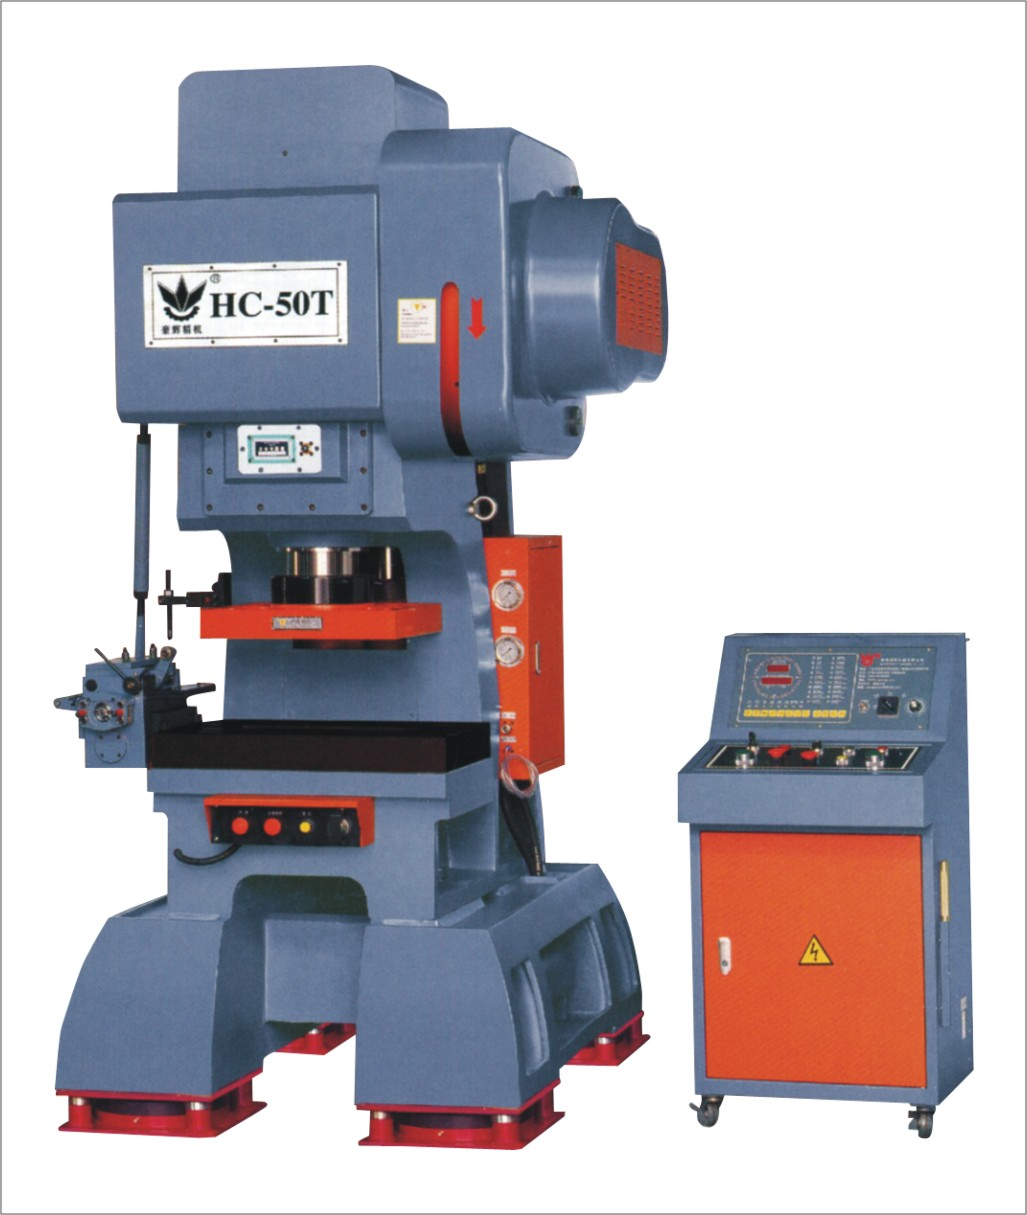 HC-50T 65TONS HIGH SPEED PRESS/ MESH PUNCHING/MOTOR CORE STAMPING/ CONNECTOR PUNCHING